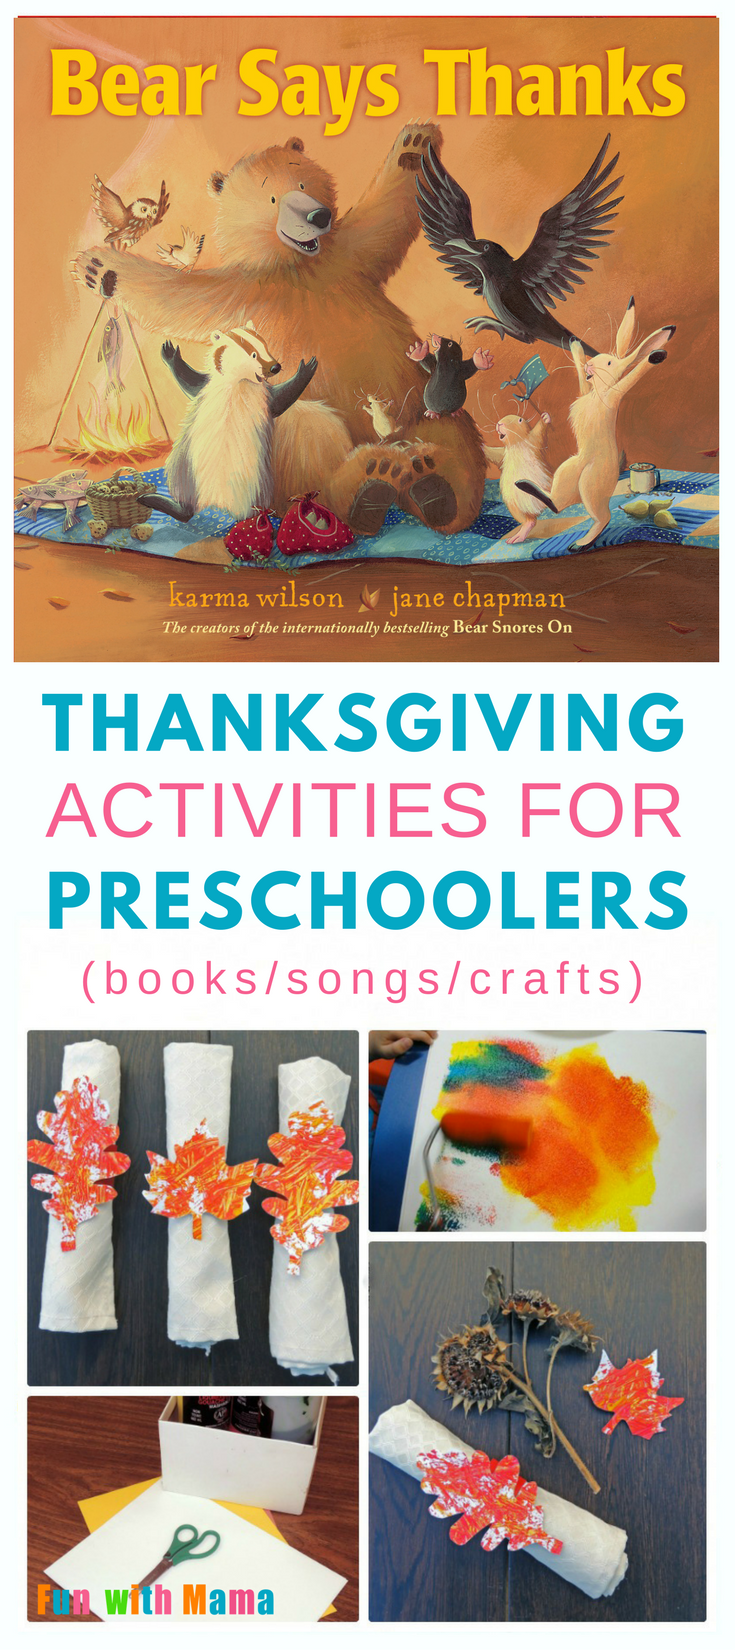 Thanksgiving activities| crafts | kids | free printable